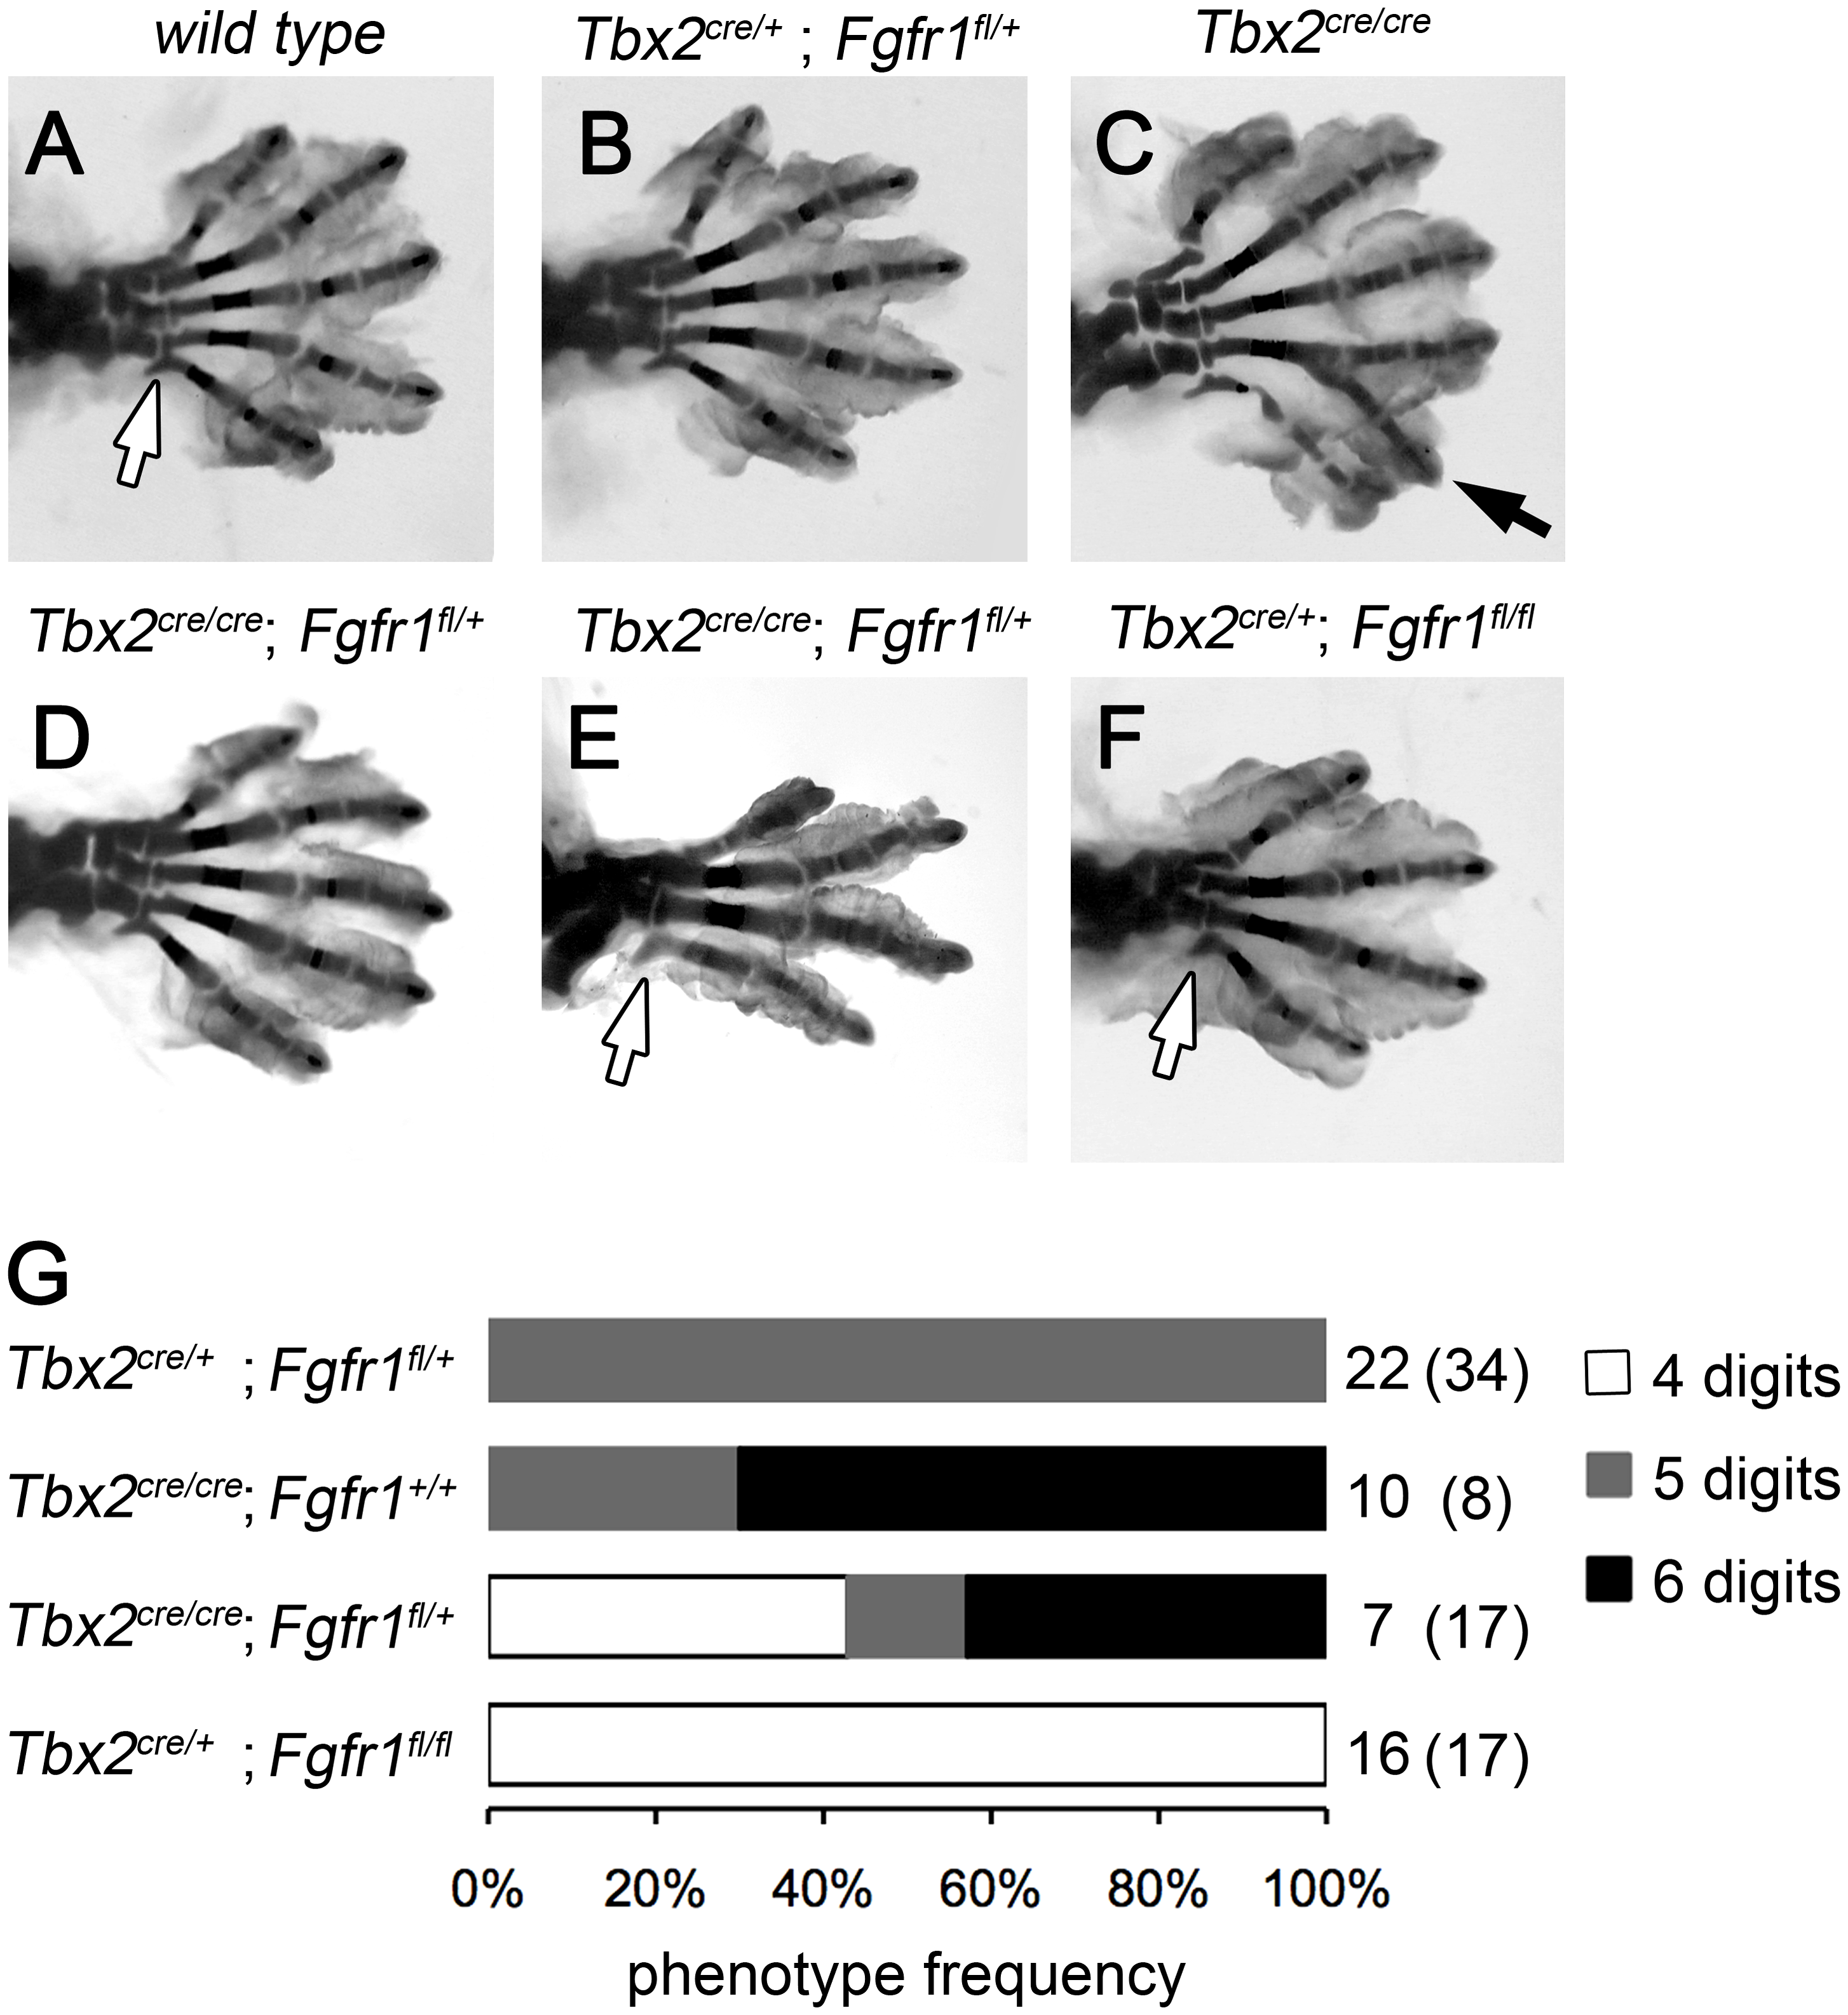 Polydactyly in <i>Tbx2</i>-deficient limbs depends on the Fgf signaling level.